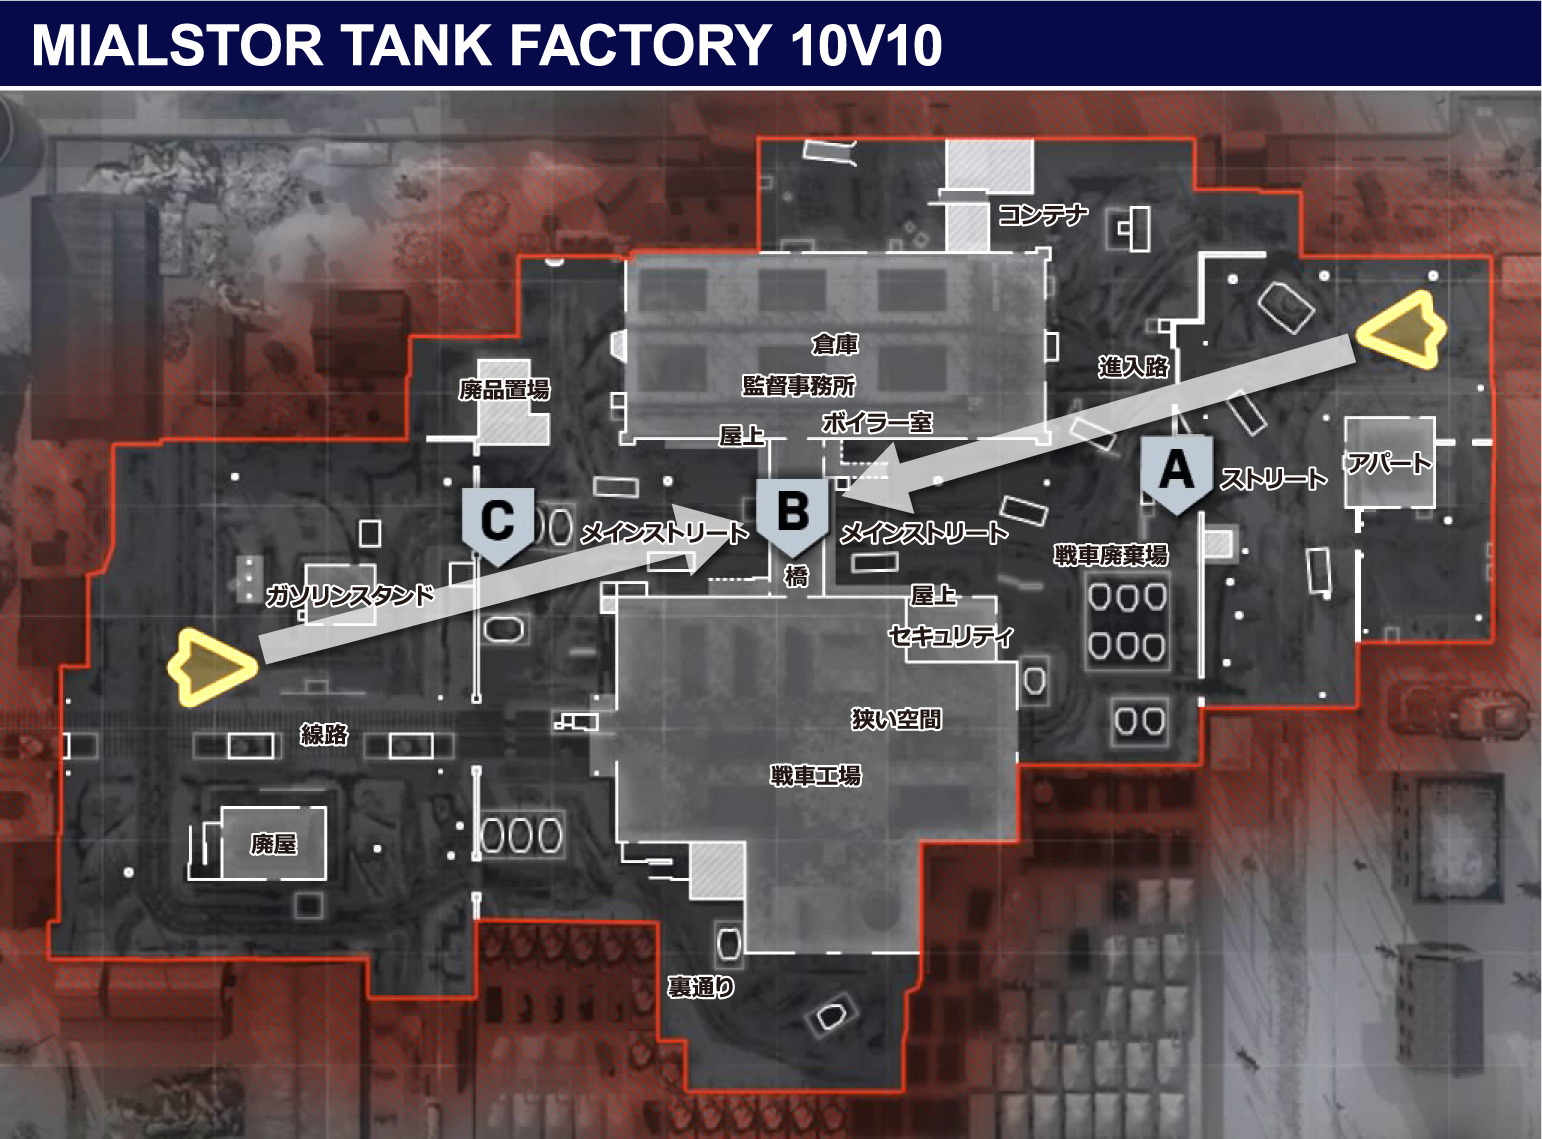 DOMINATION-MIALSTOR-TANK-FACTORY-10V10-map